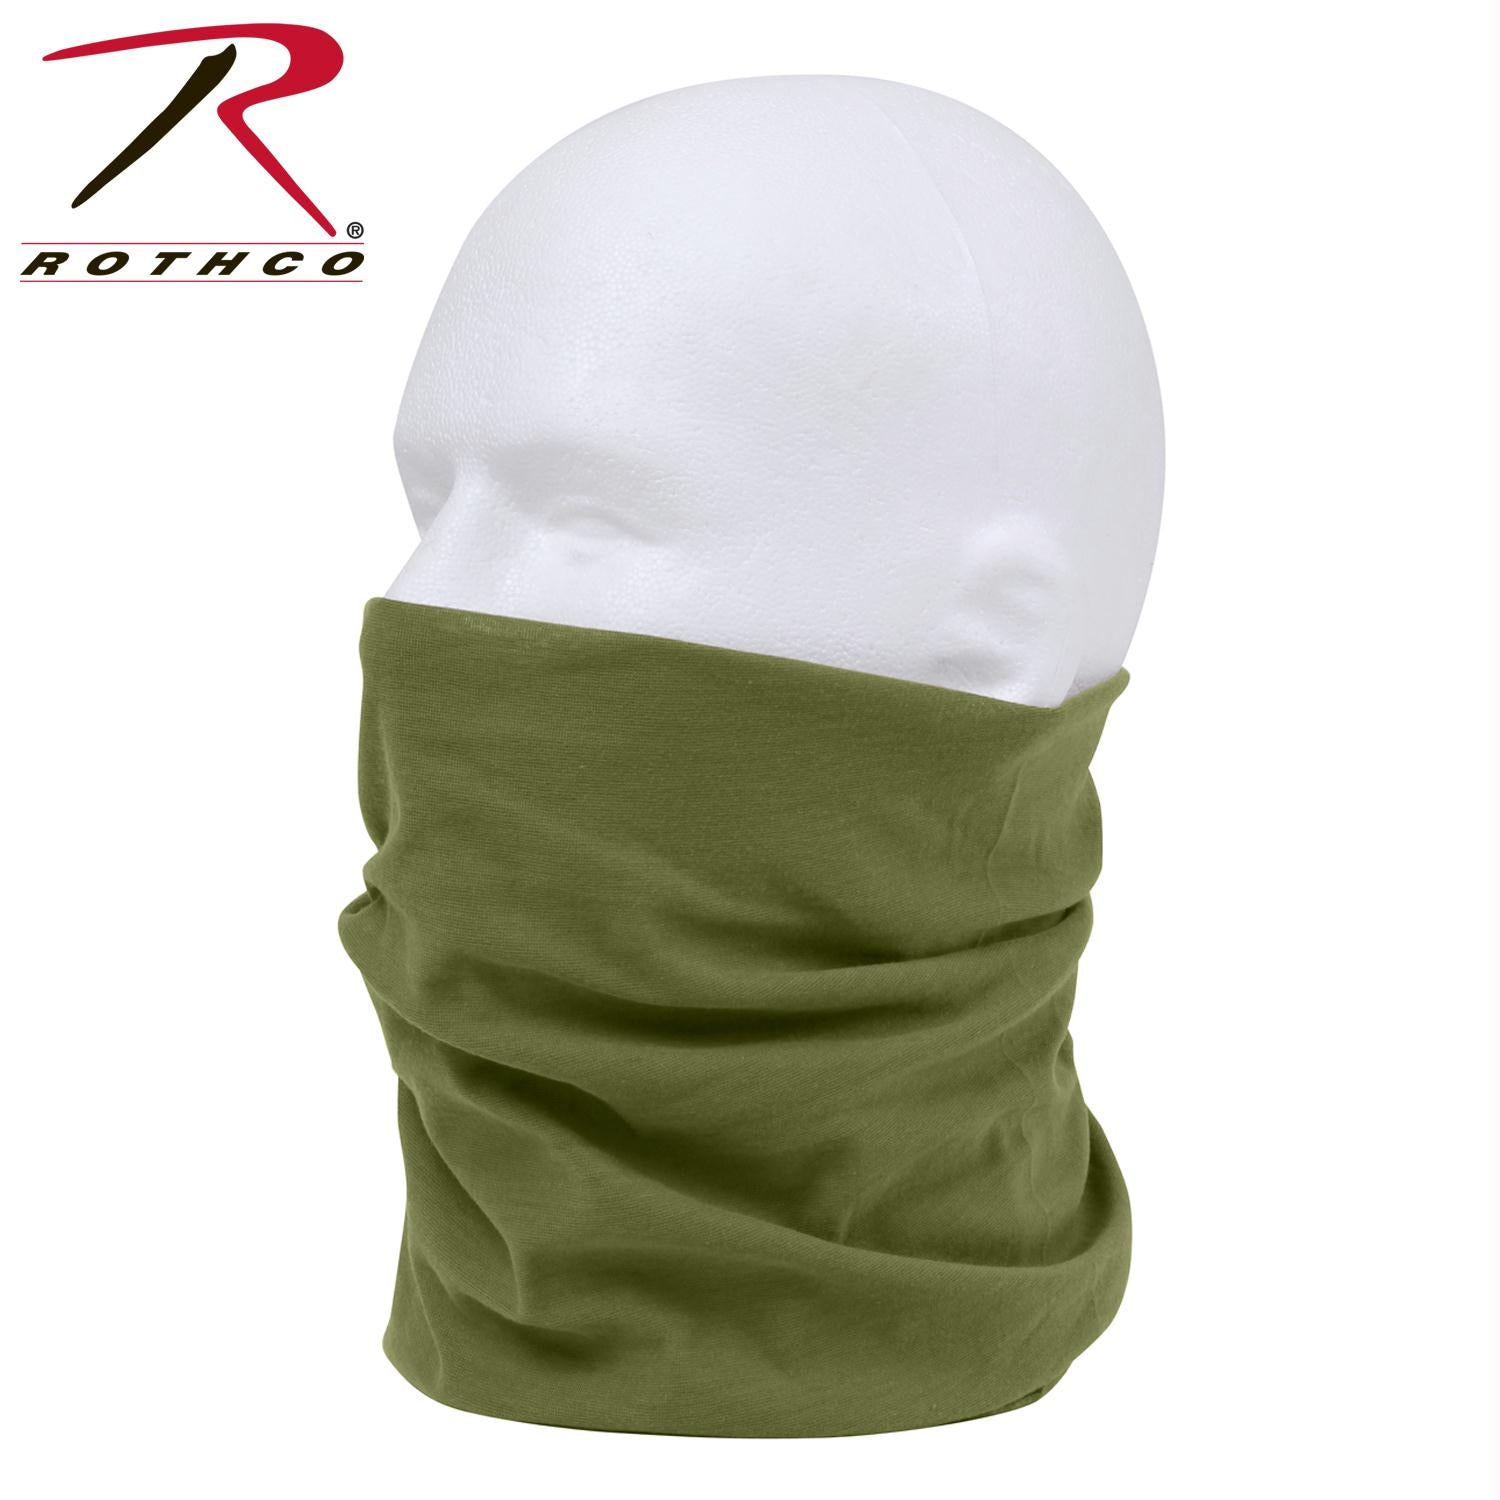 Rothco Multi Use Tactical Wrap - Olive Drab